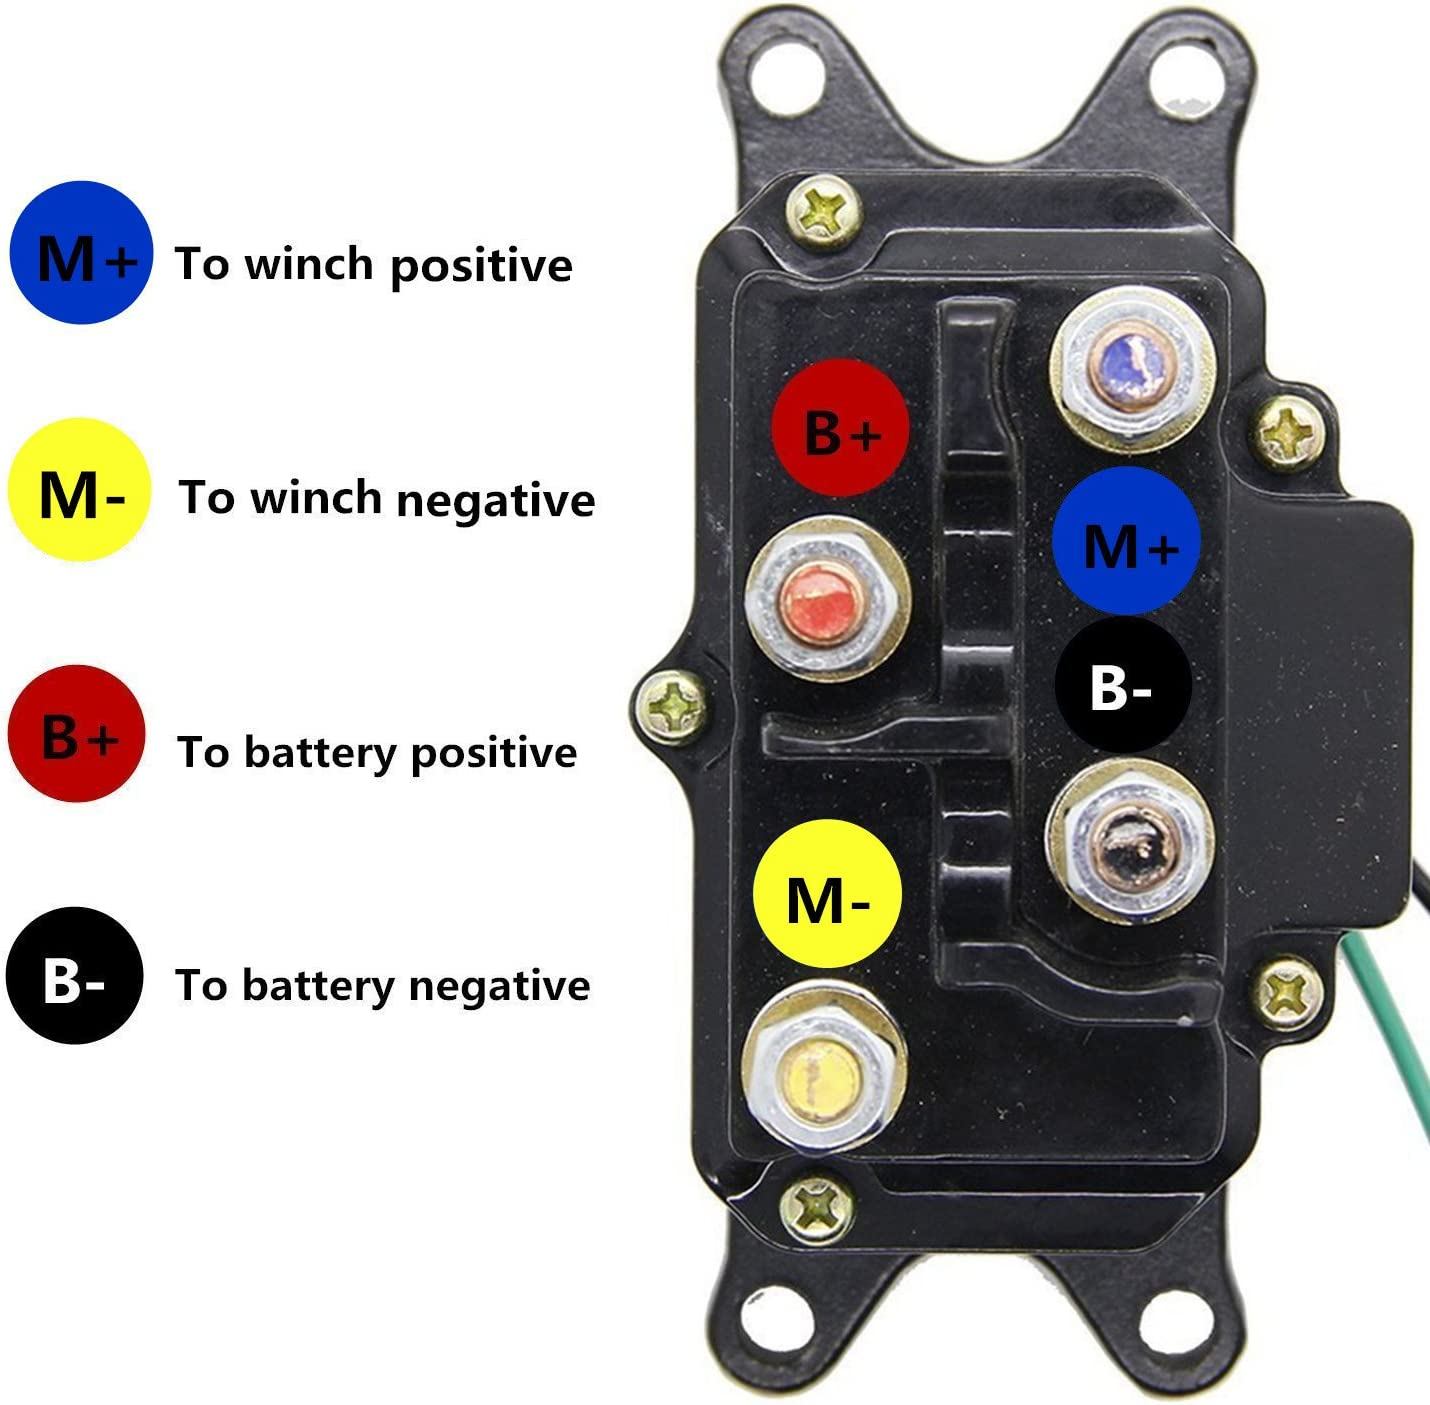 Atv Winch Solenoid Wiring Diagram from images-na.ssl-images-amazon.com